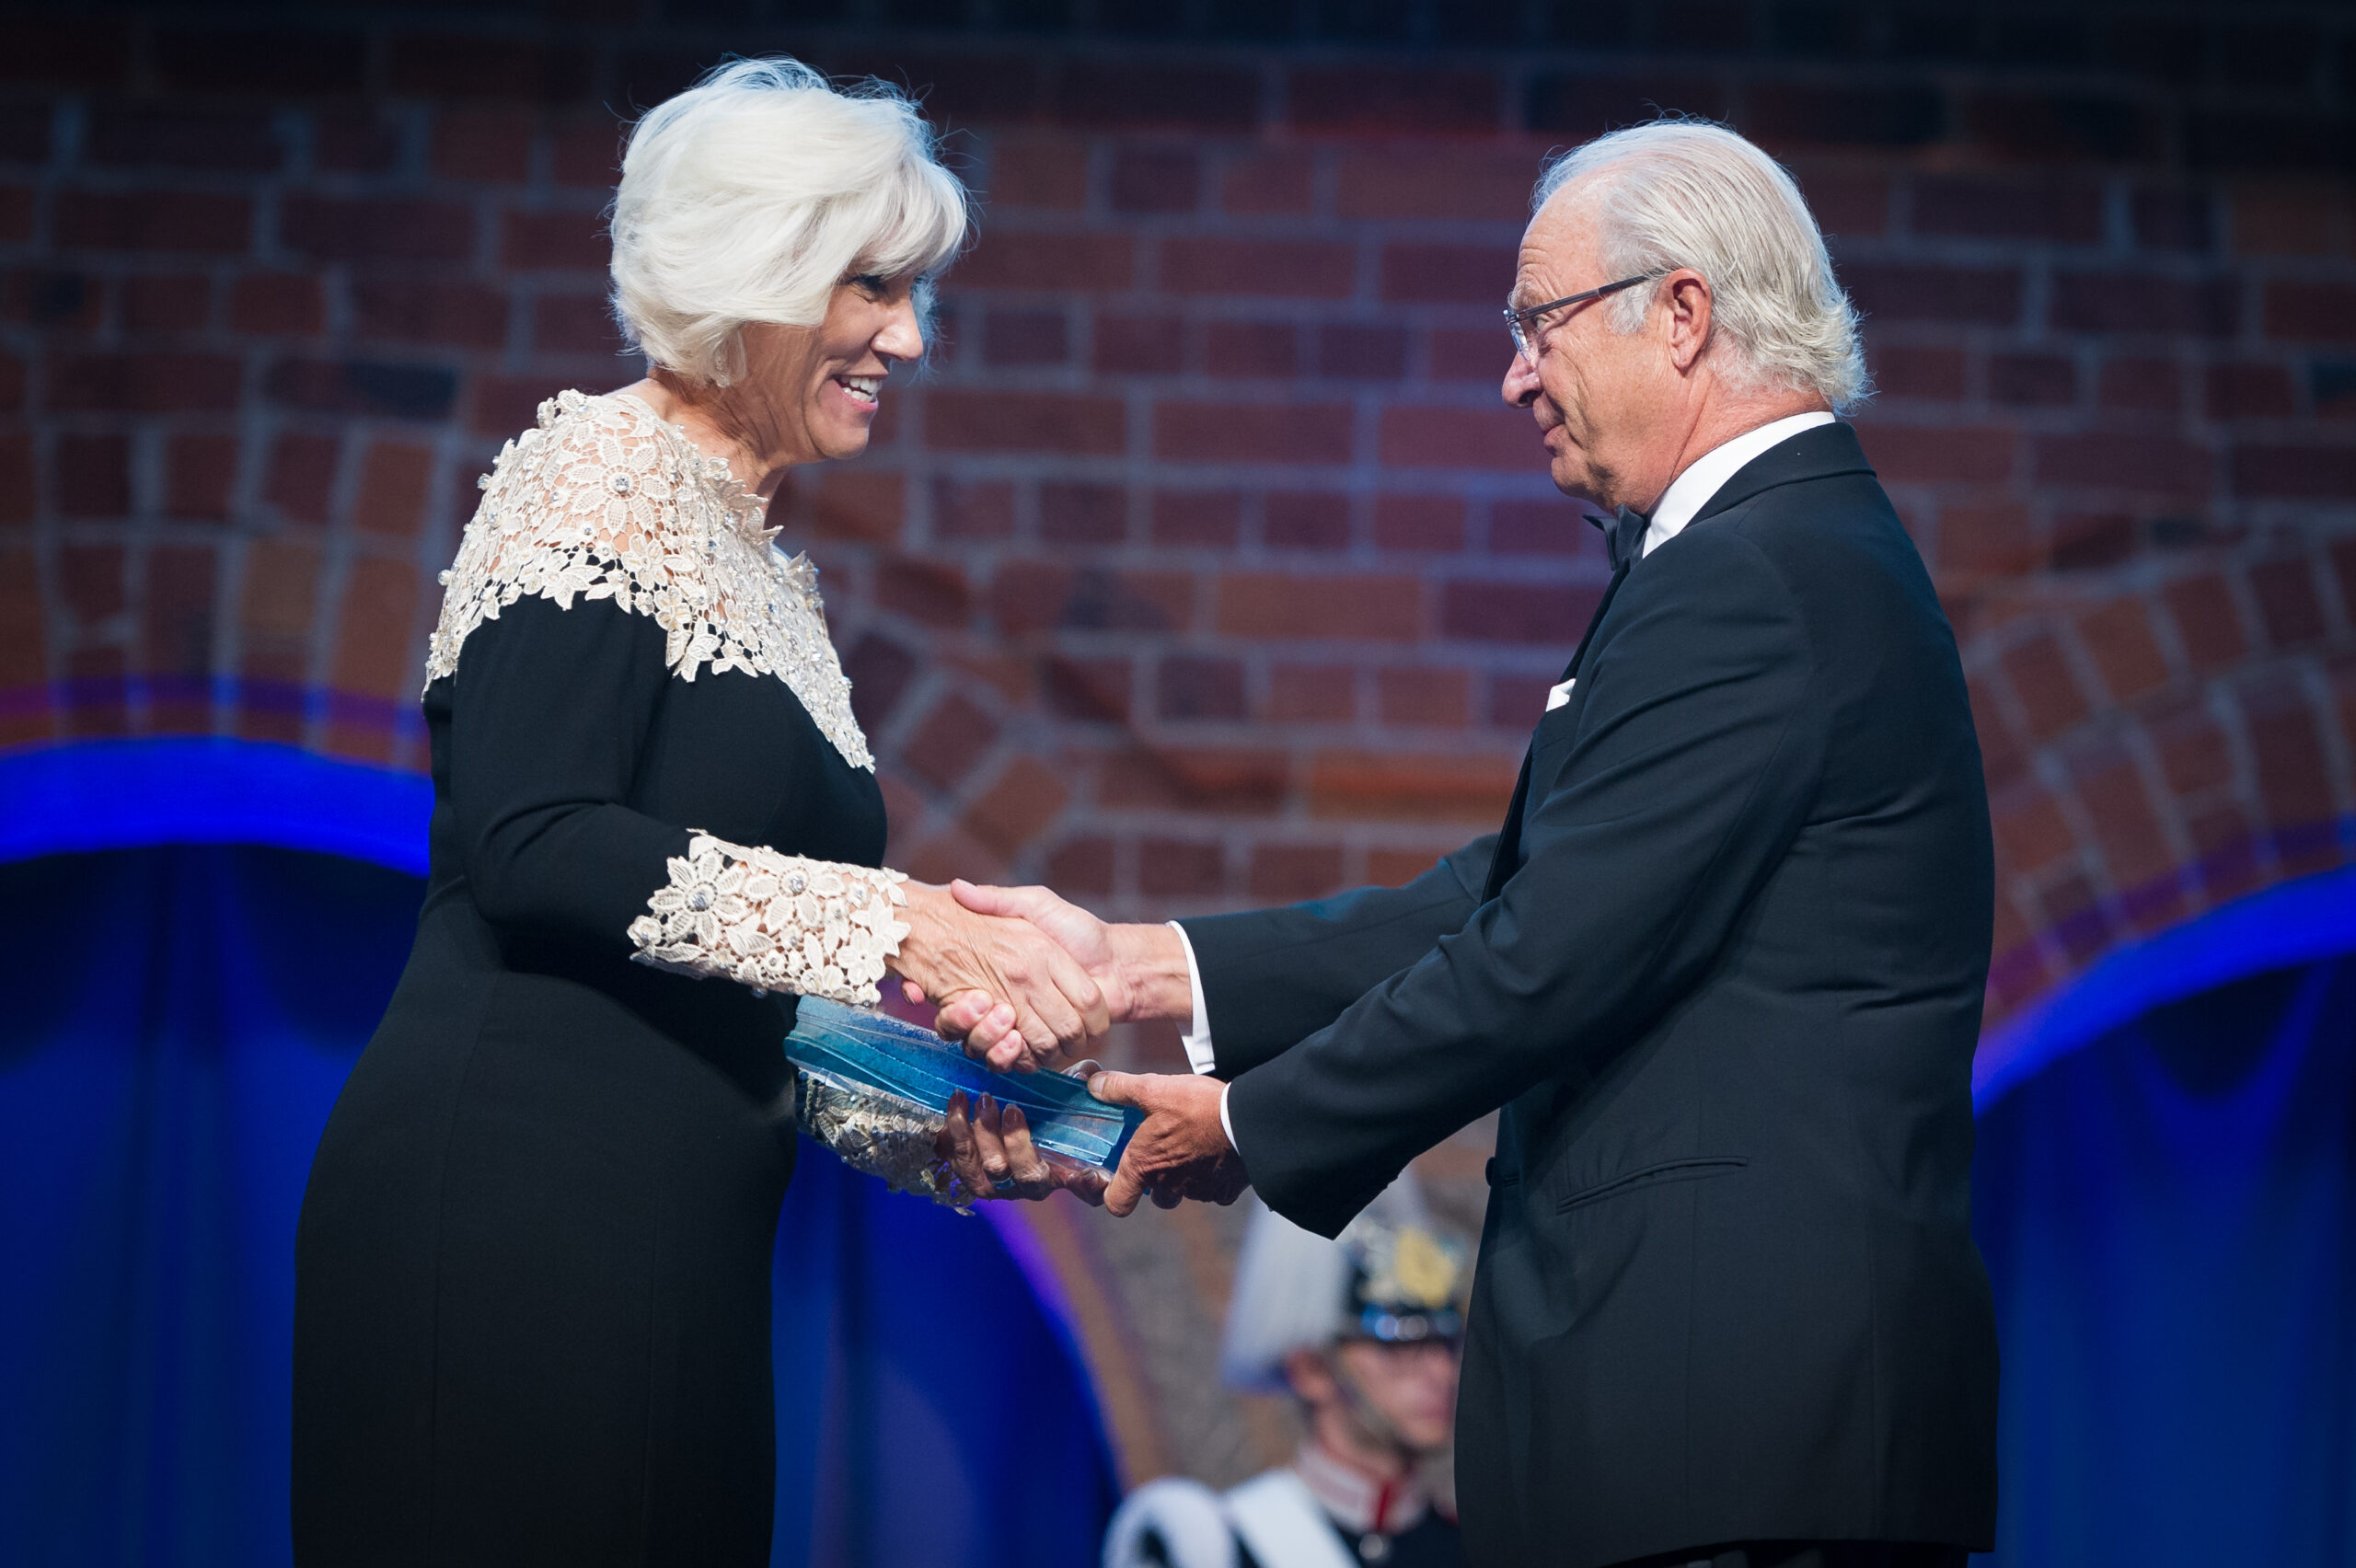 Profile view of Joan Rose accepting the Stockholm Prize and shaking hands with the award distributor.